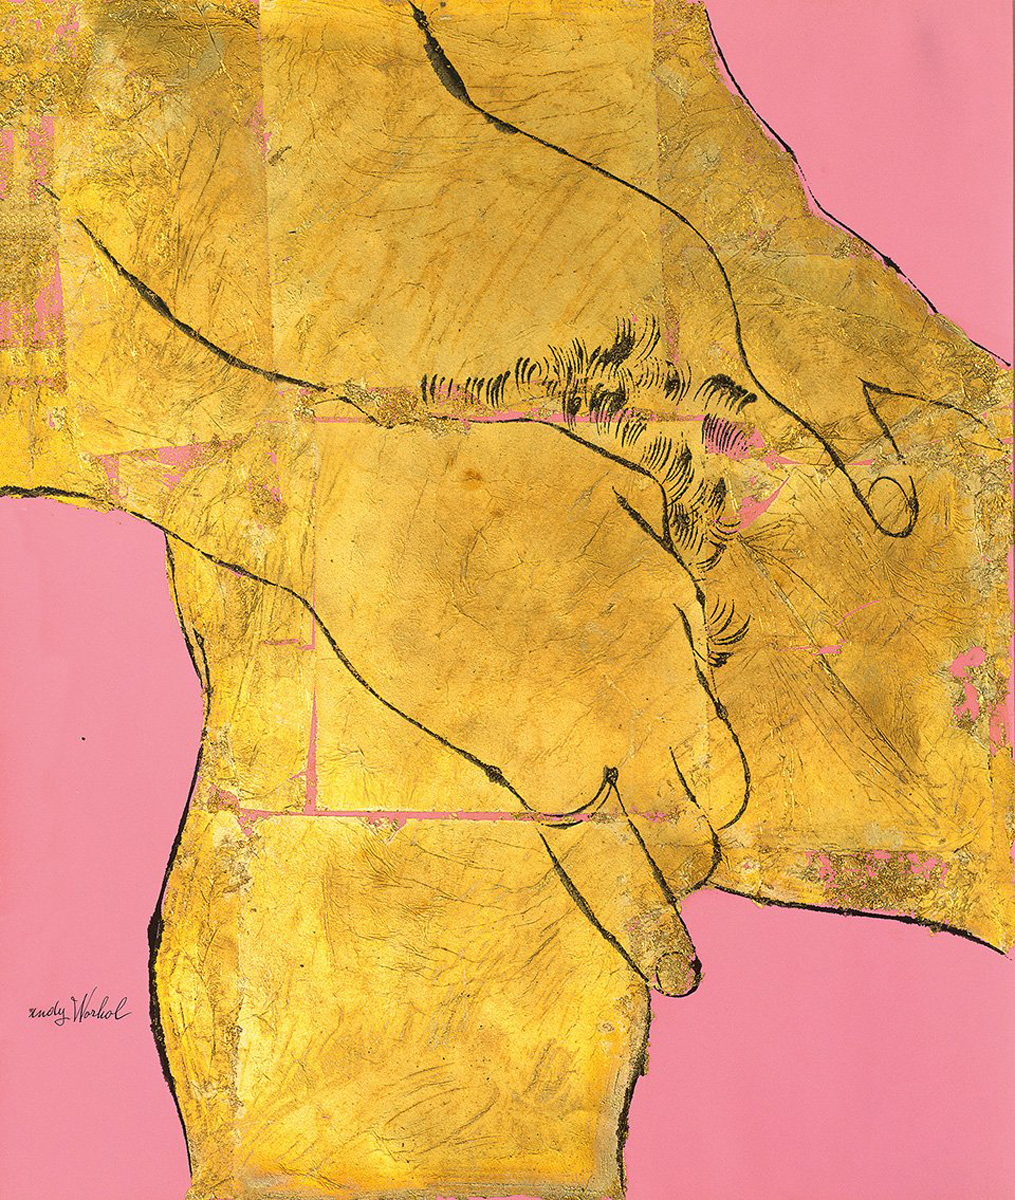 Andy Warhol and his early homo-erotic drawings